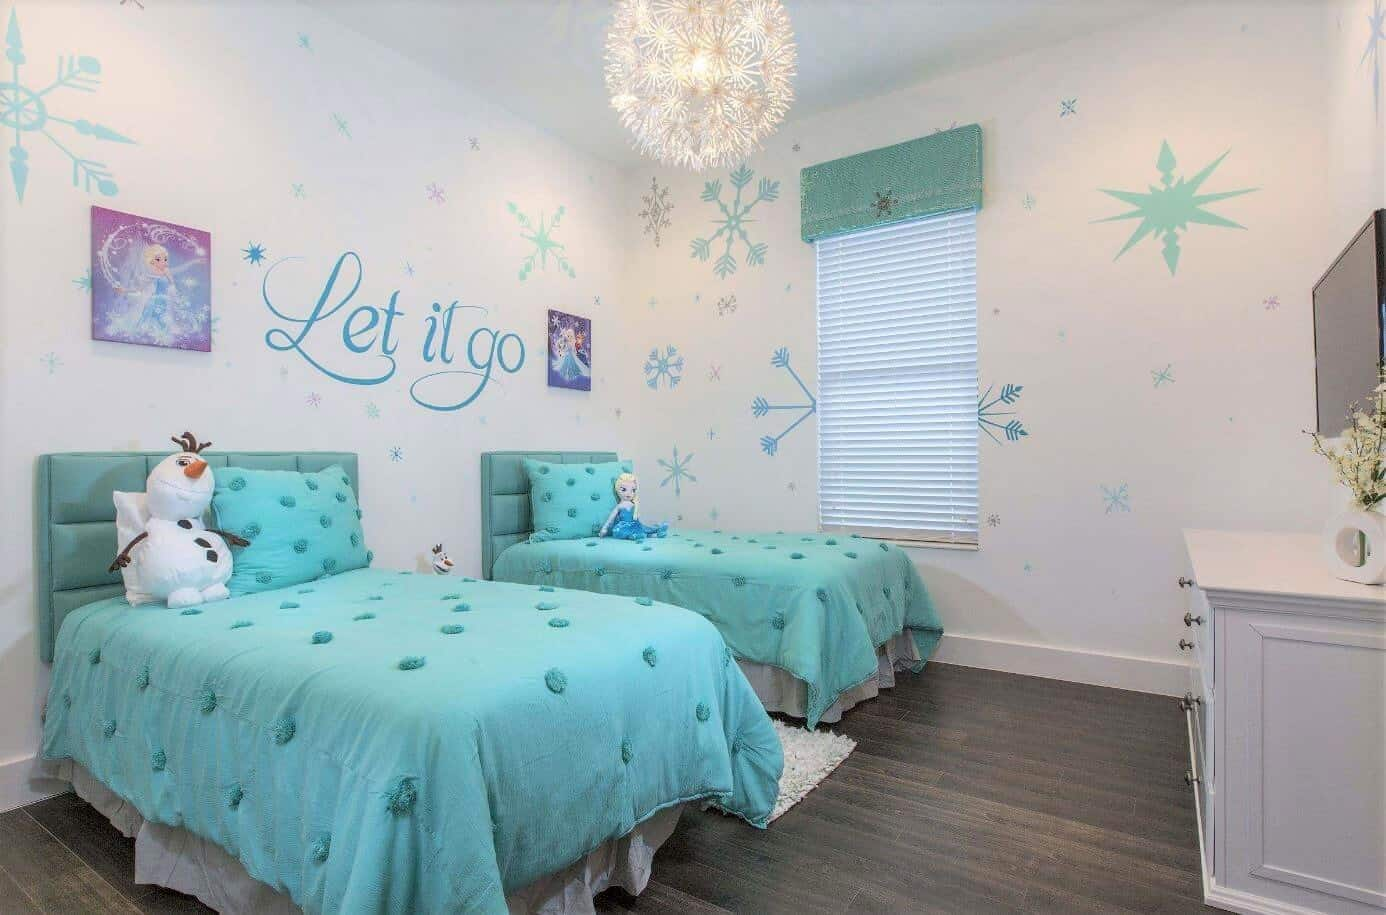 10 Creative Ideas for Kids Room Decor for Girls ... on Girls Room Decor  id=34275